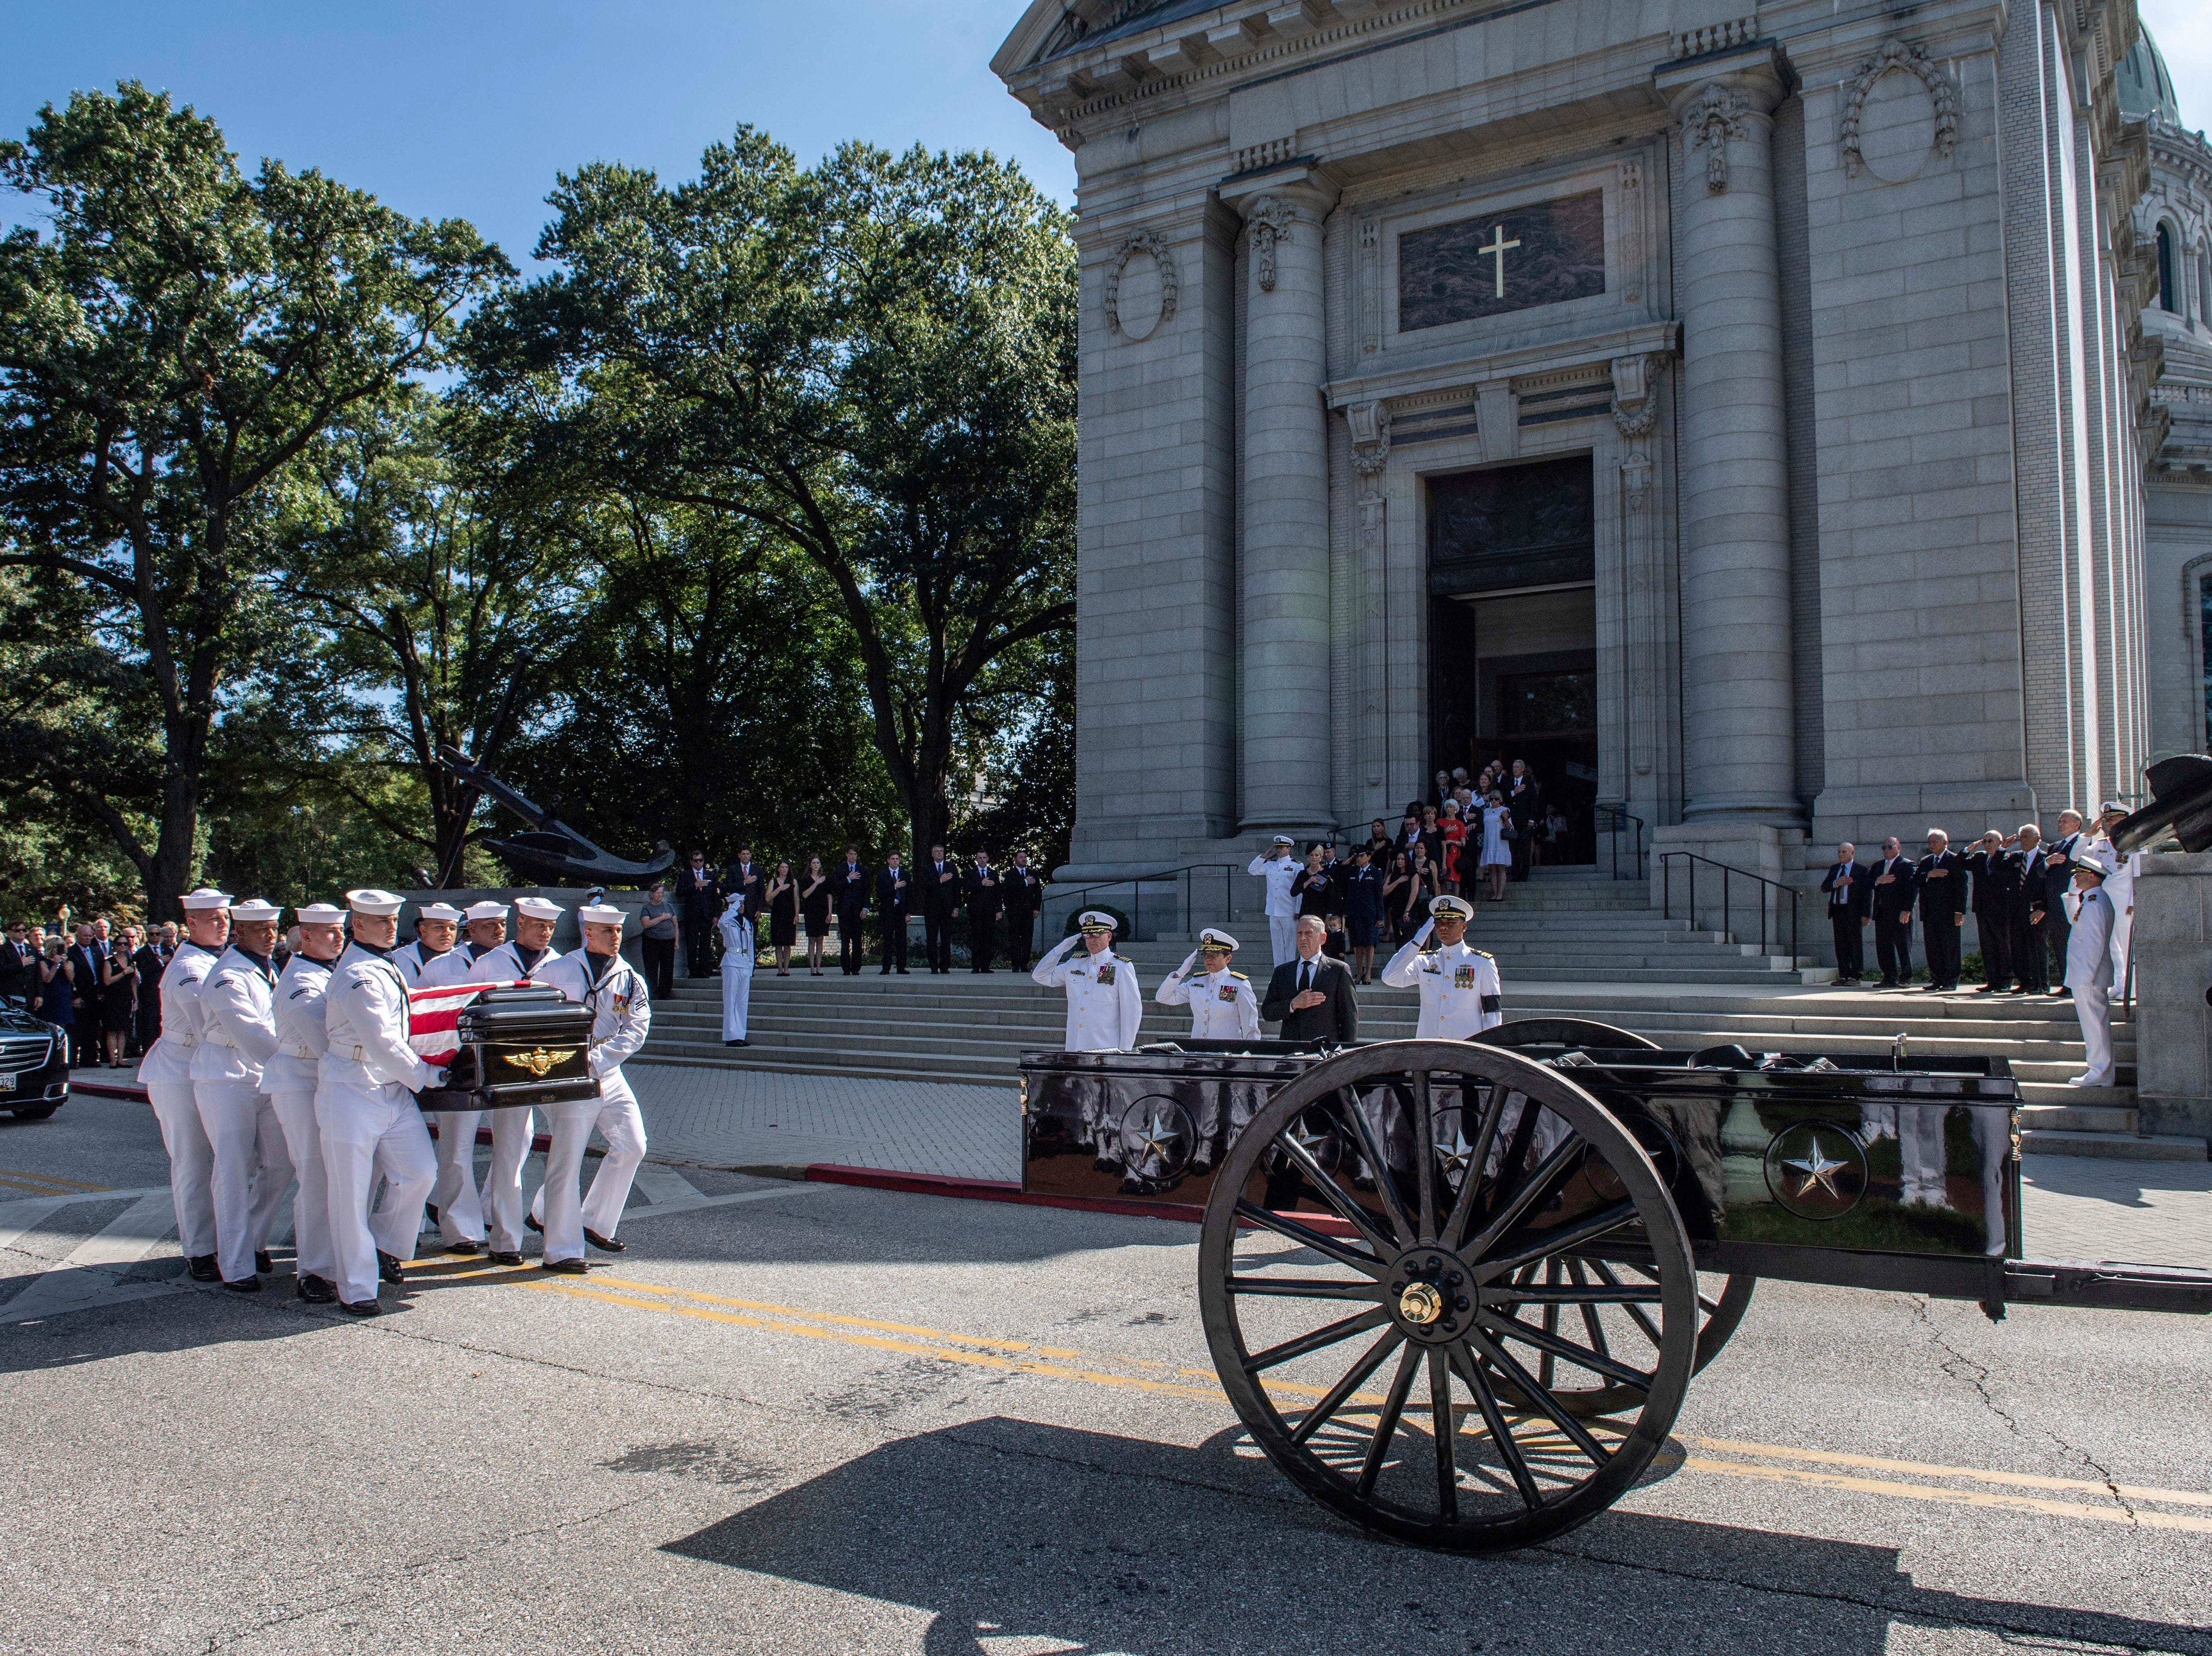 In this image provided by the U.S. Navy, Navy Body Bearers place the casket of Sen. John McCain onto a horse-drawn caisson after his funeral service at the United States Naval Academy Chapel, Sunday, Sept. 2, 2018, in Annapolis, Md.